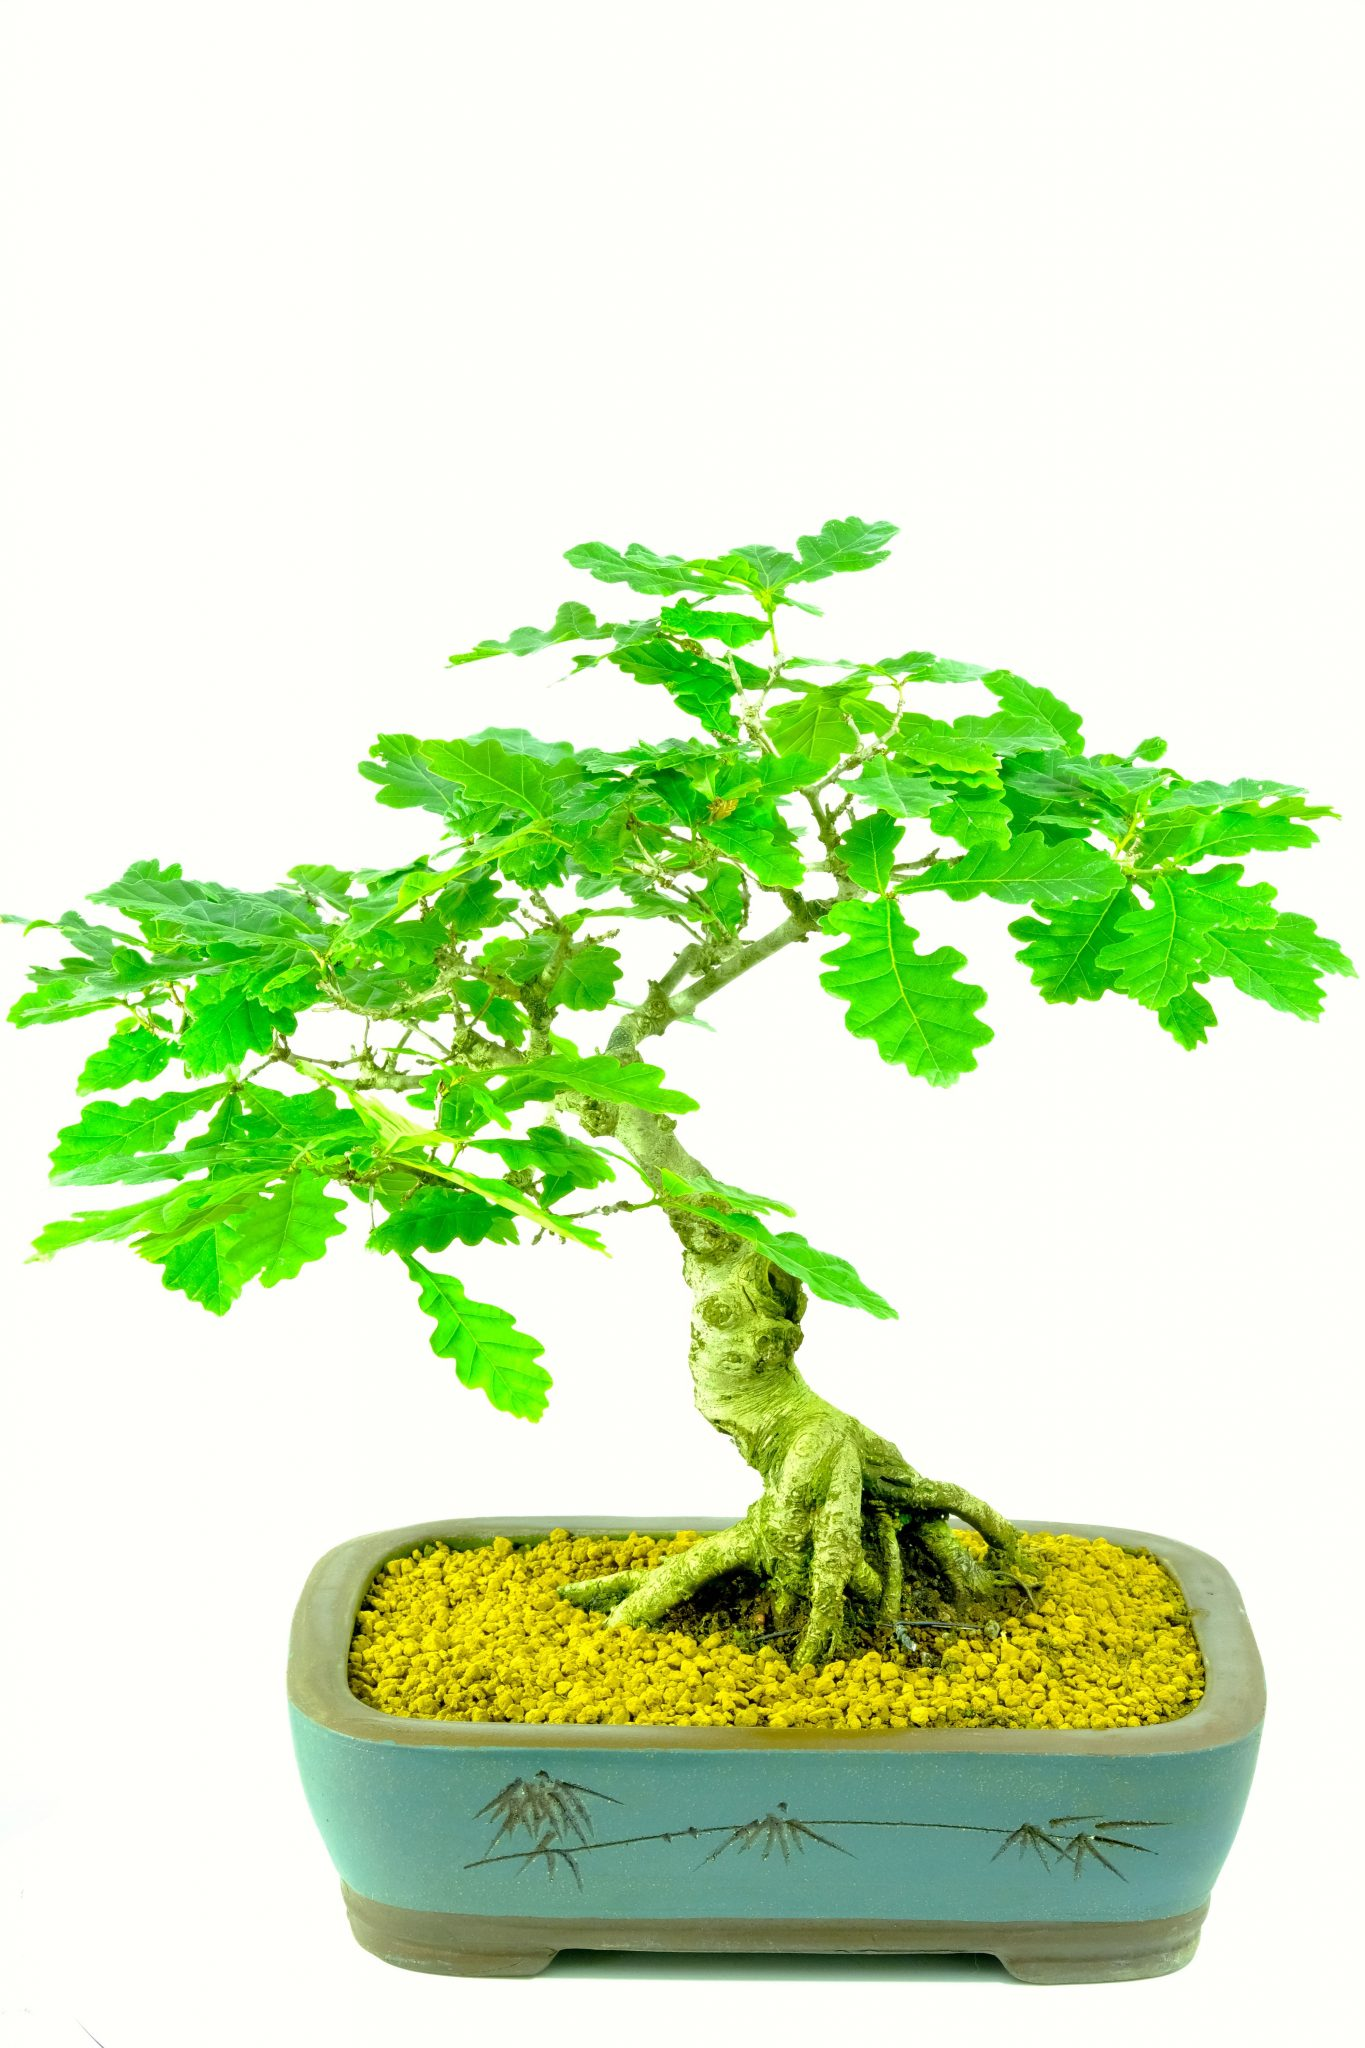 Specimen English Oak Hardy Outdoor Bonsai With Exquisite Character And Artisitc Appeal 25 Years Old